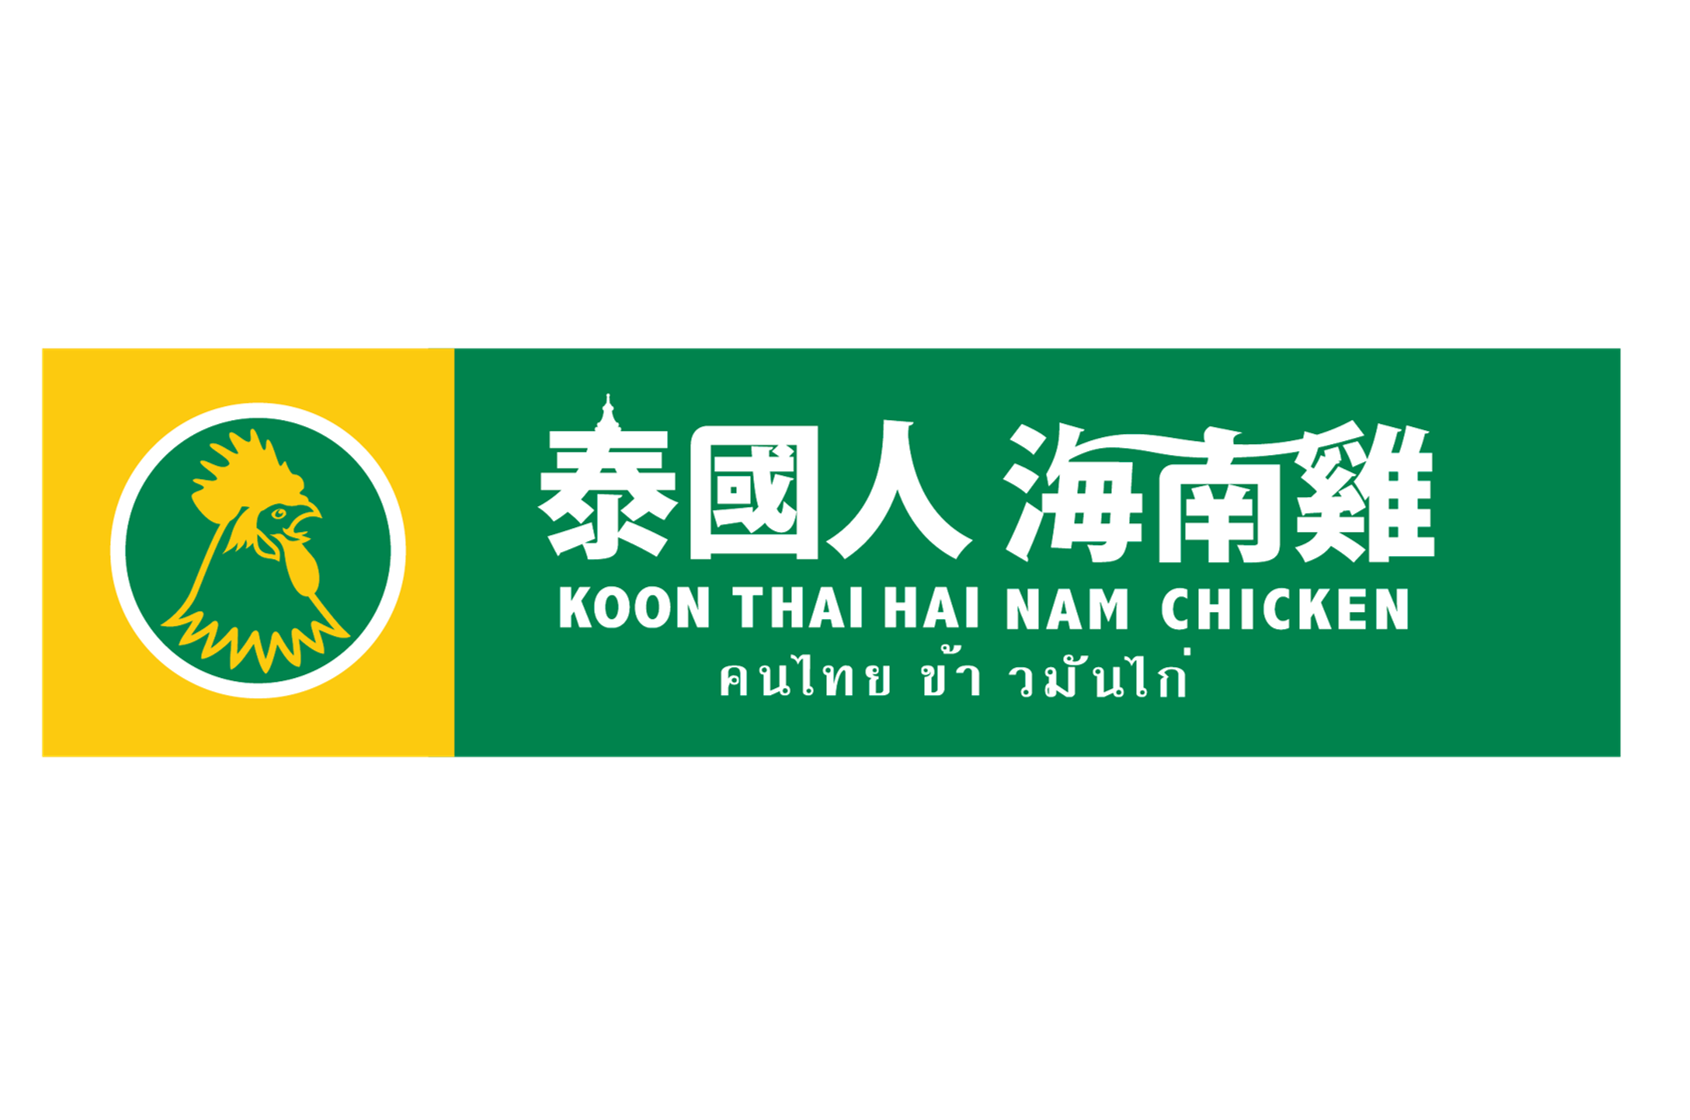 Koon Thai Hai Nam Chicken